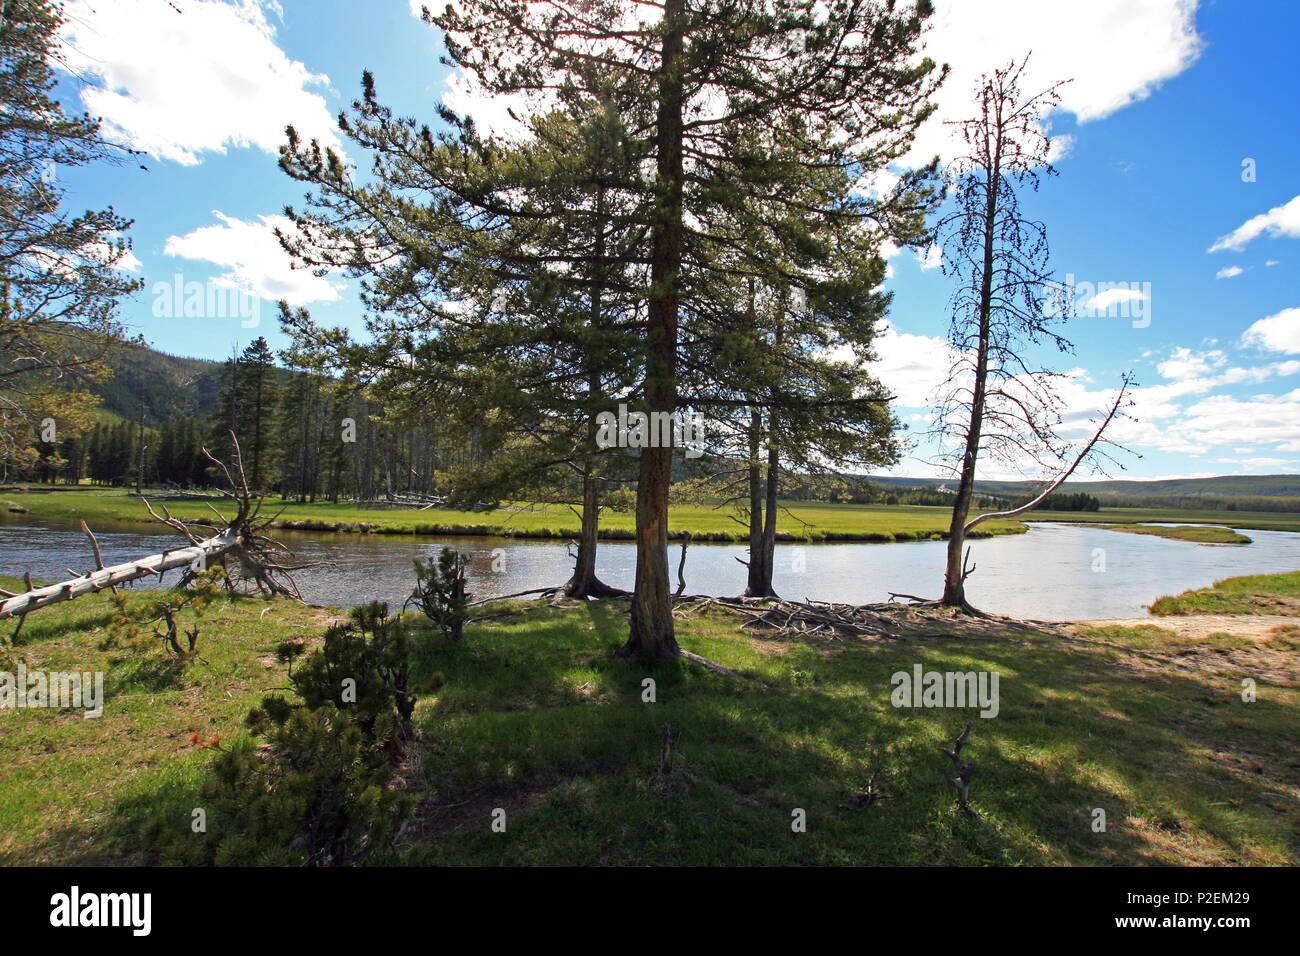 Gibbon River flowing through Gibbon Meadows in Yellowstone National Park in Wyoming United States - Stock Image